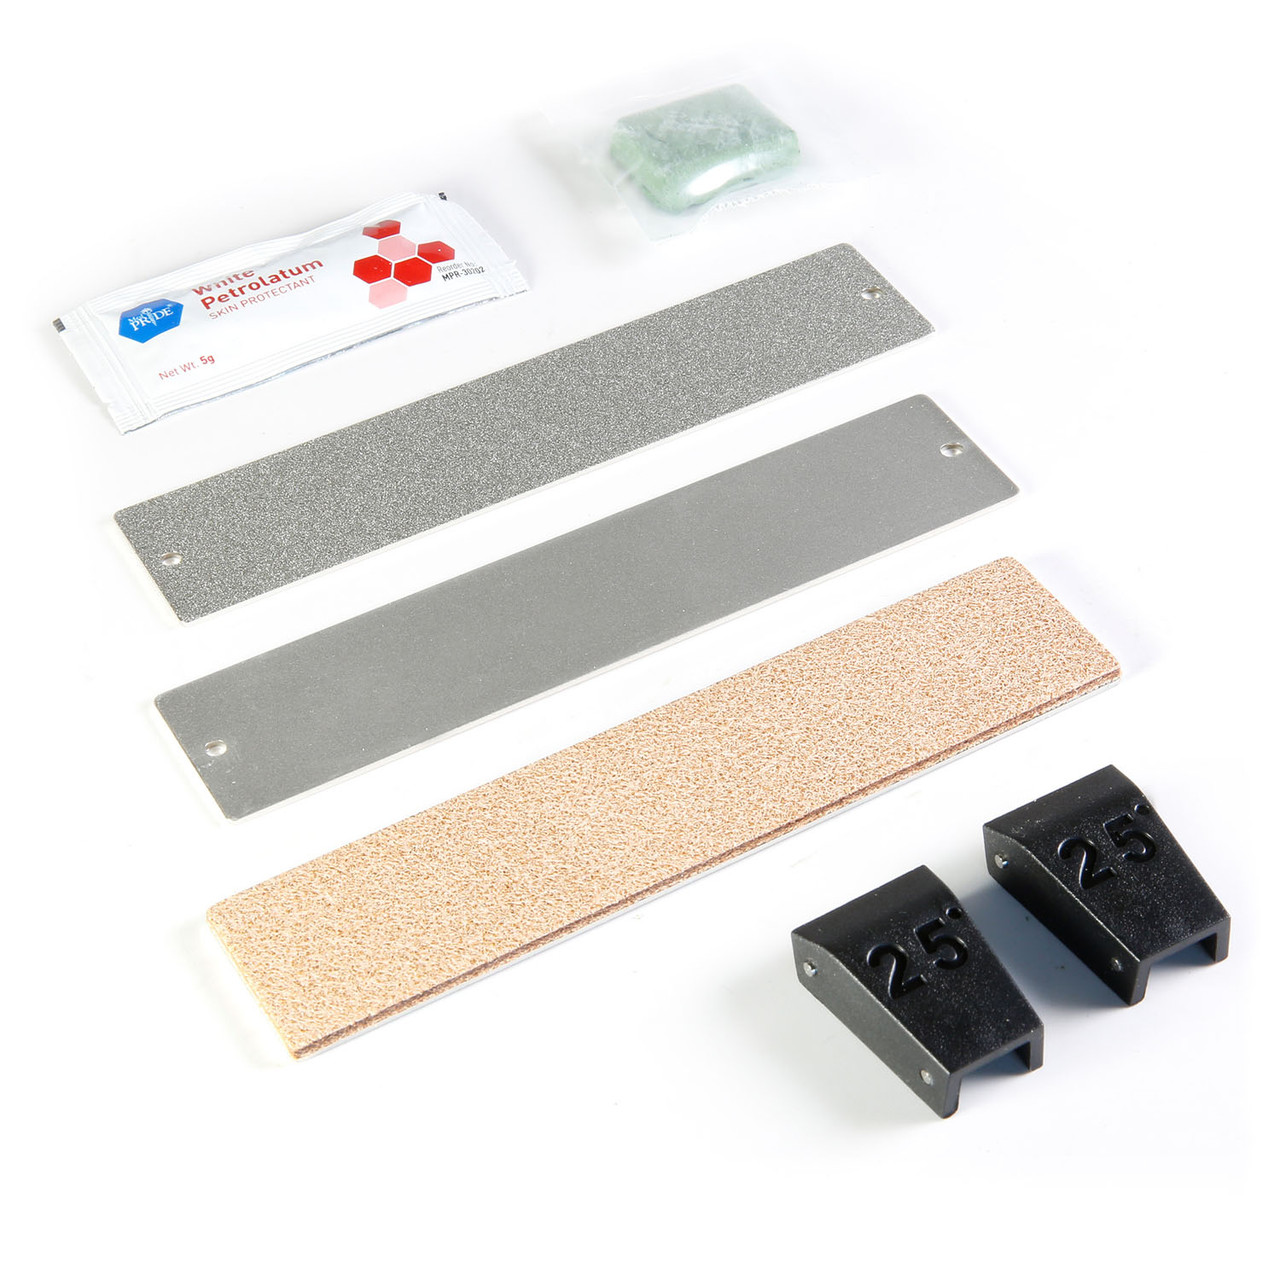 Work Sharp Guided Sharpening System Accessory Upgrade Kit